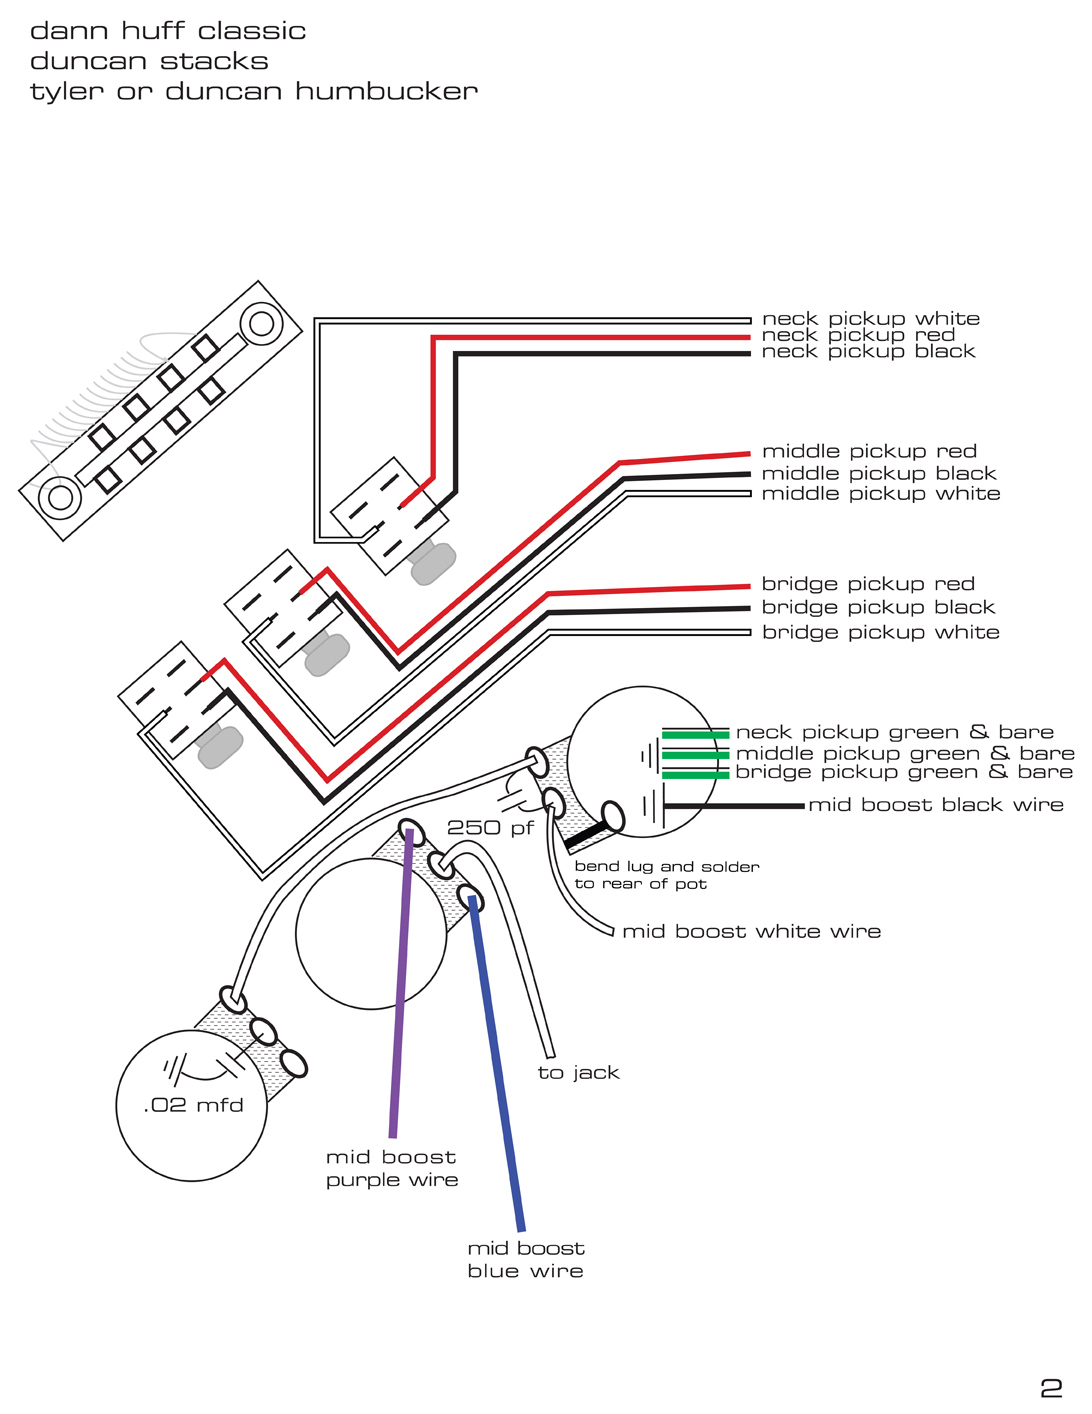 Classic Dann Huff Wiring Diagram Page 2.jpg